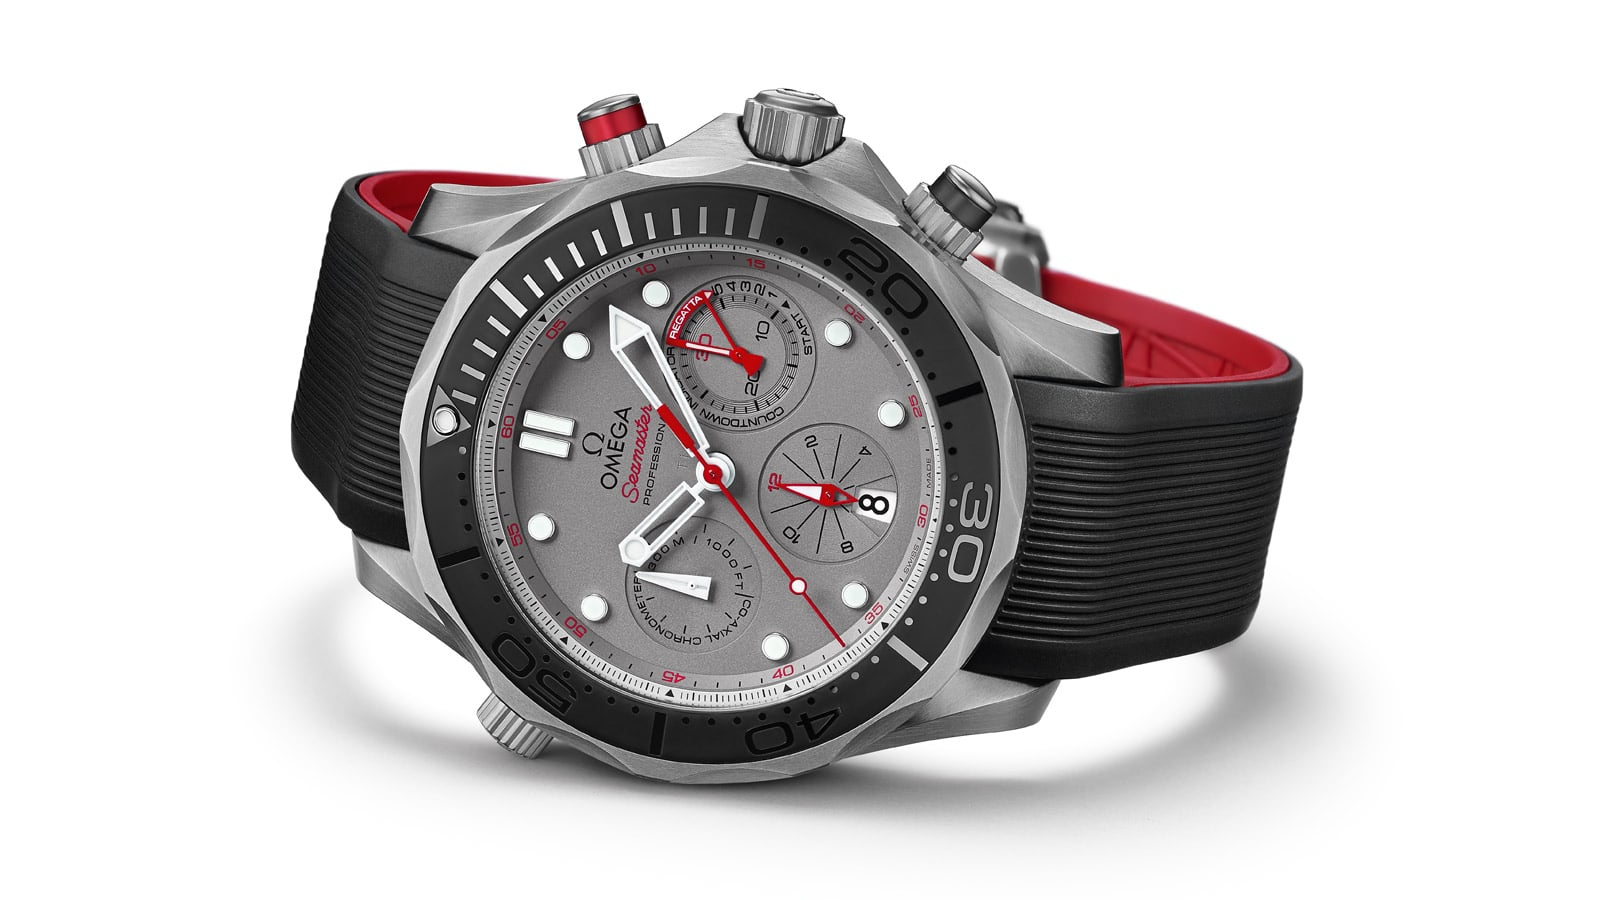 The Seamaster ETNZ's case is made of titanium, the bracelet is made of black rubber on the front and red on the back, the grey dial is protected by a sapphire crystal treated for reflections.